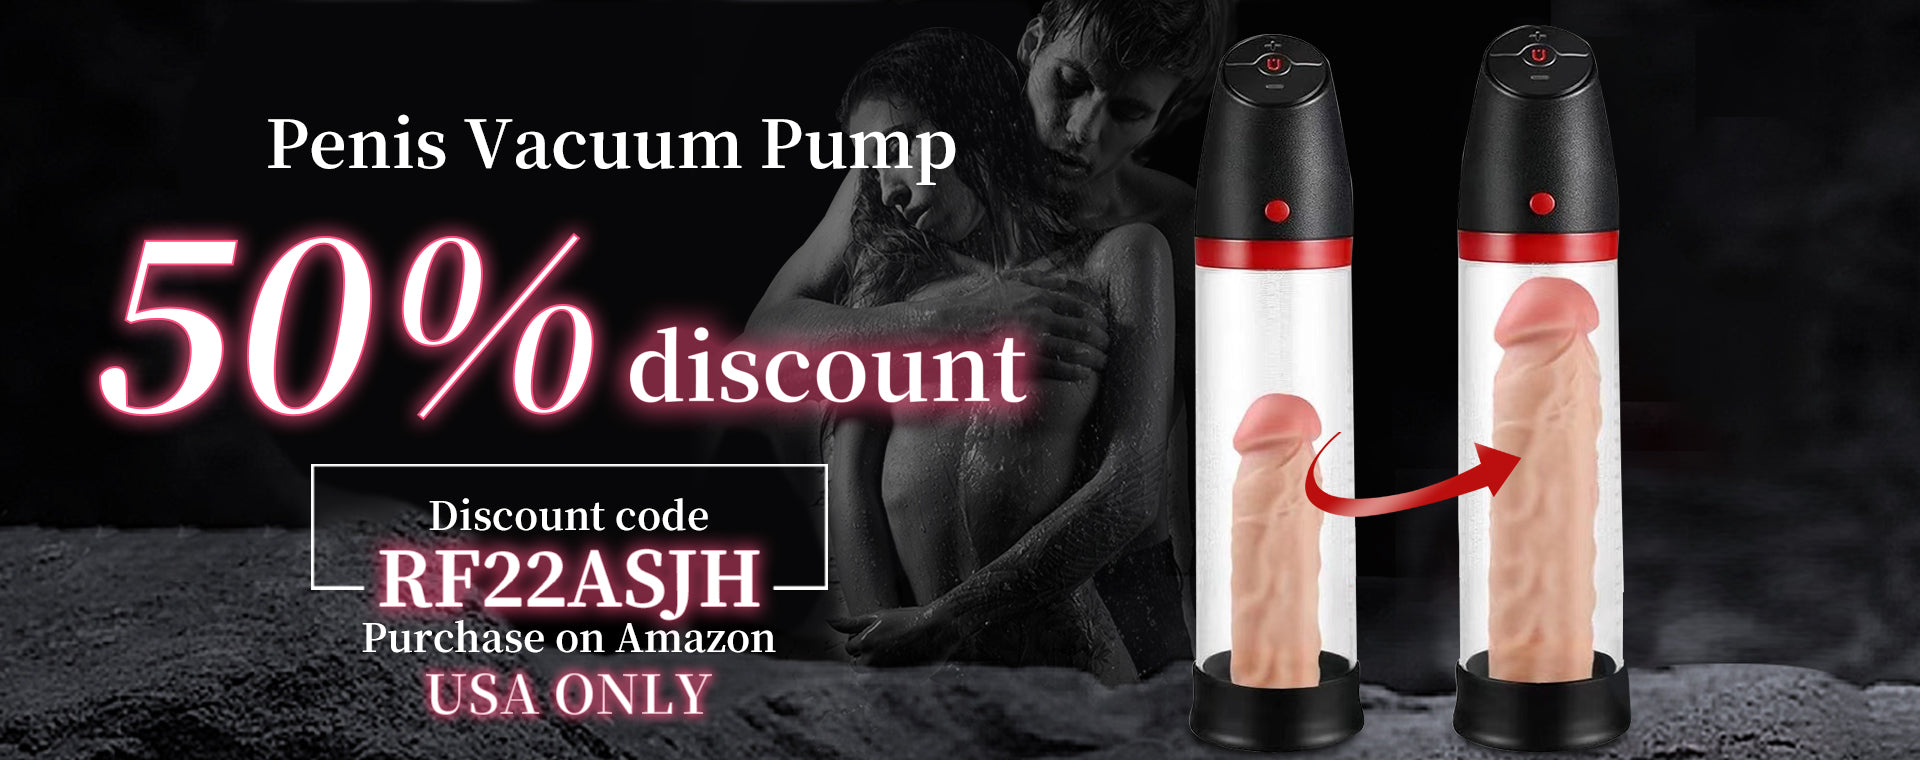 Utimi 50%off discount sale pennis vacuum pump sex toys